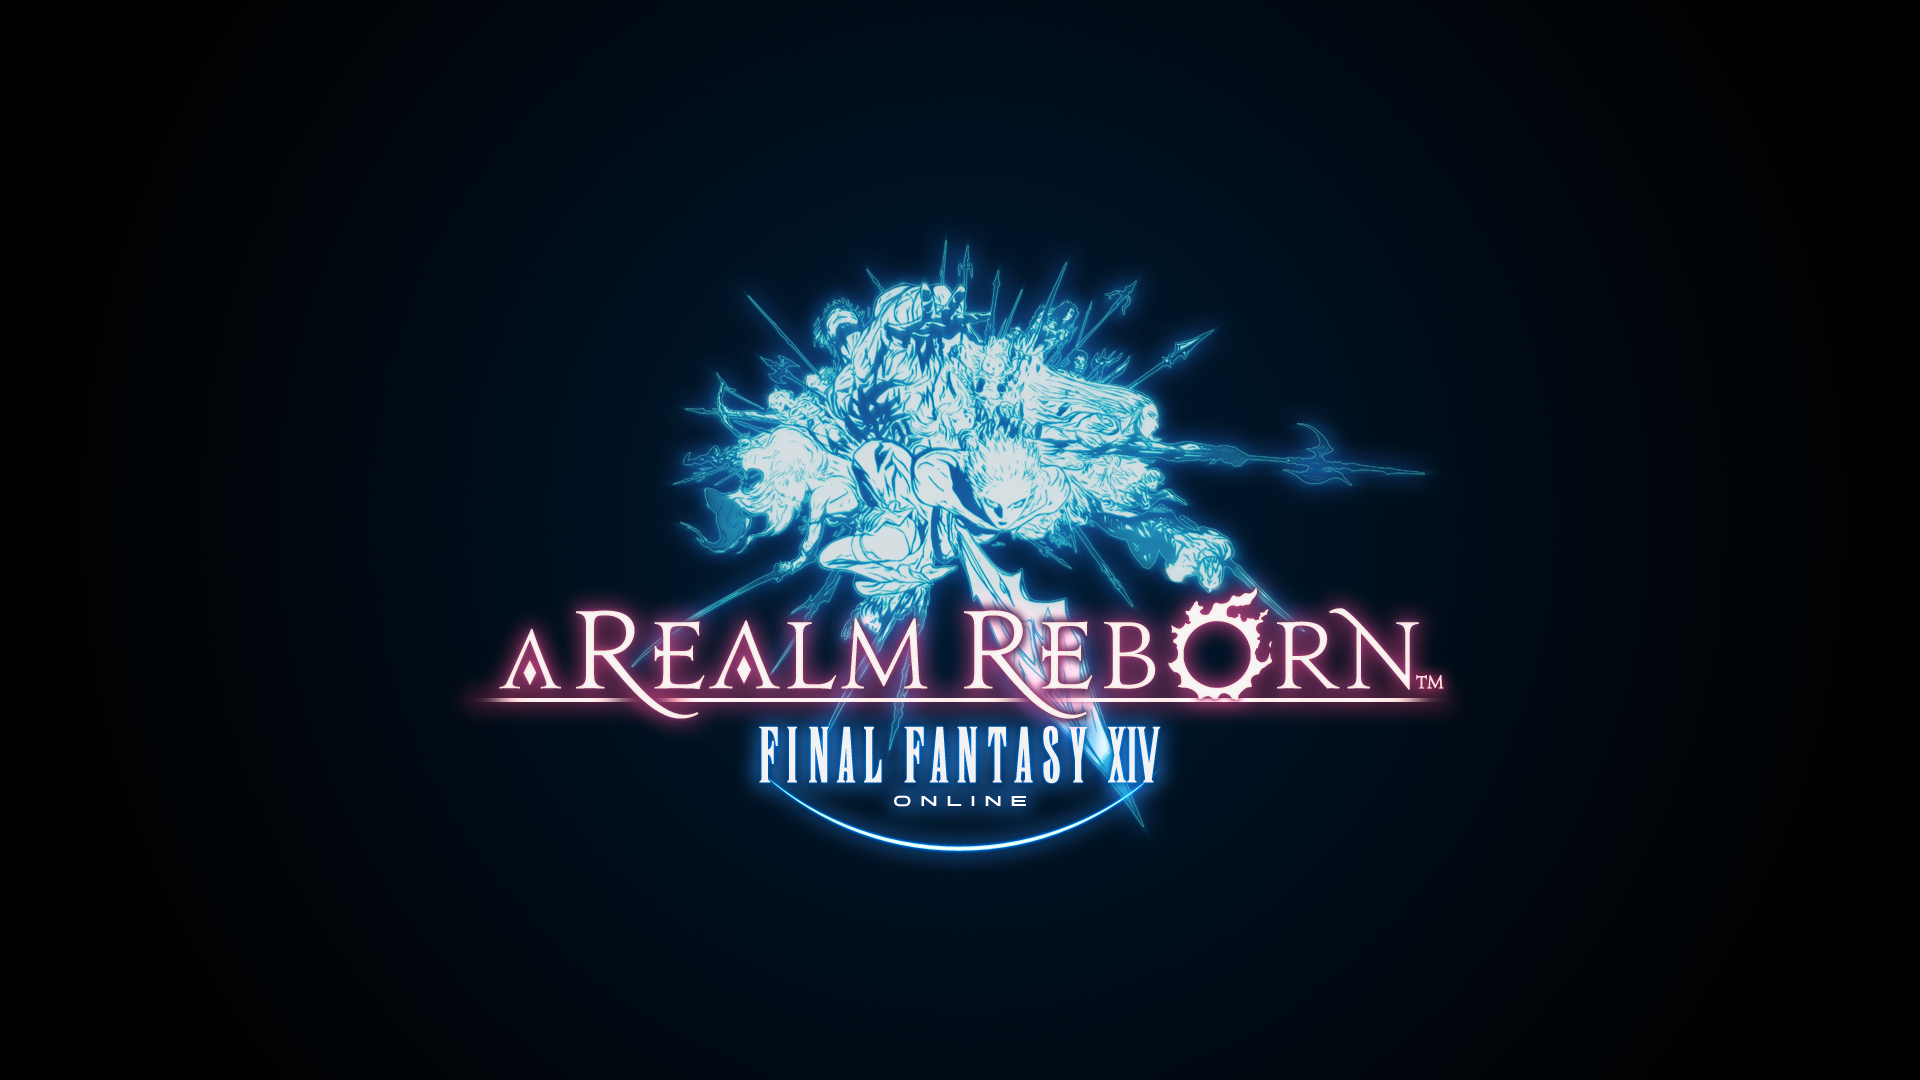 This week in Gaming History, FFXIV A Realm Reborn released.